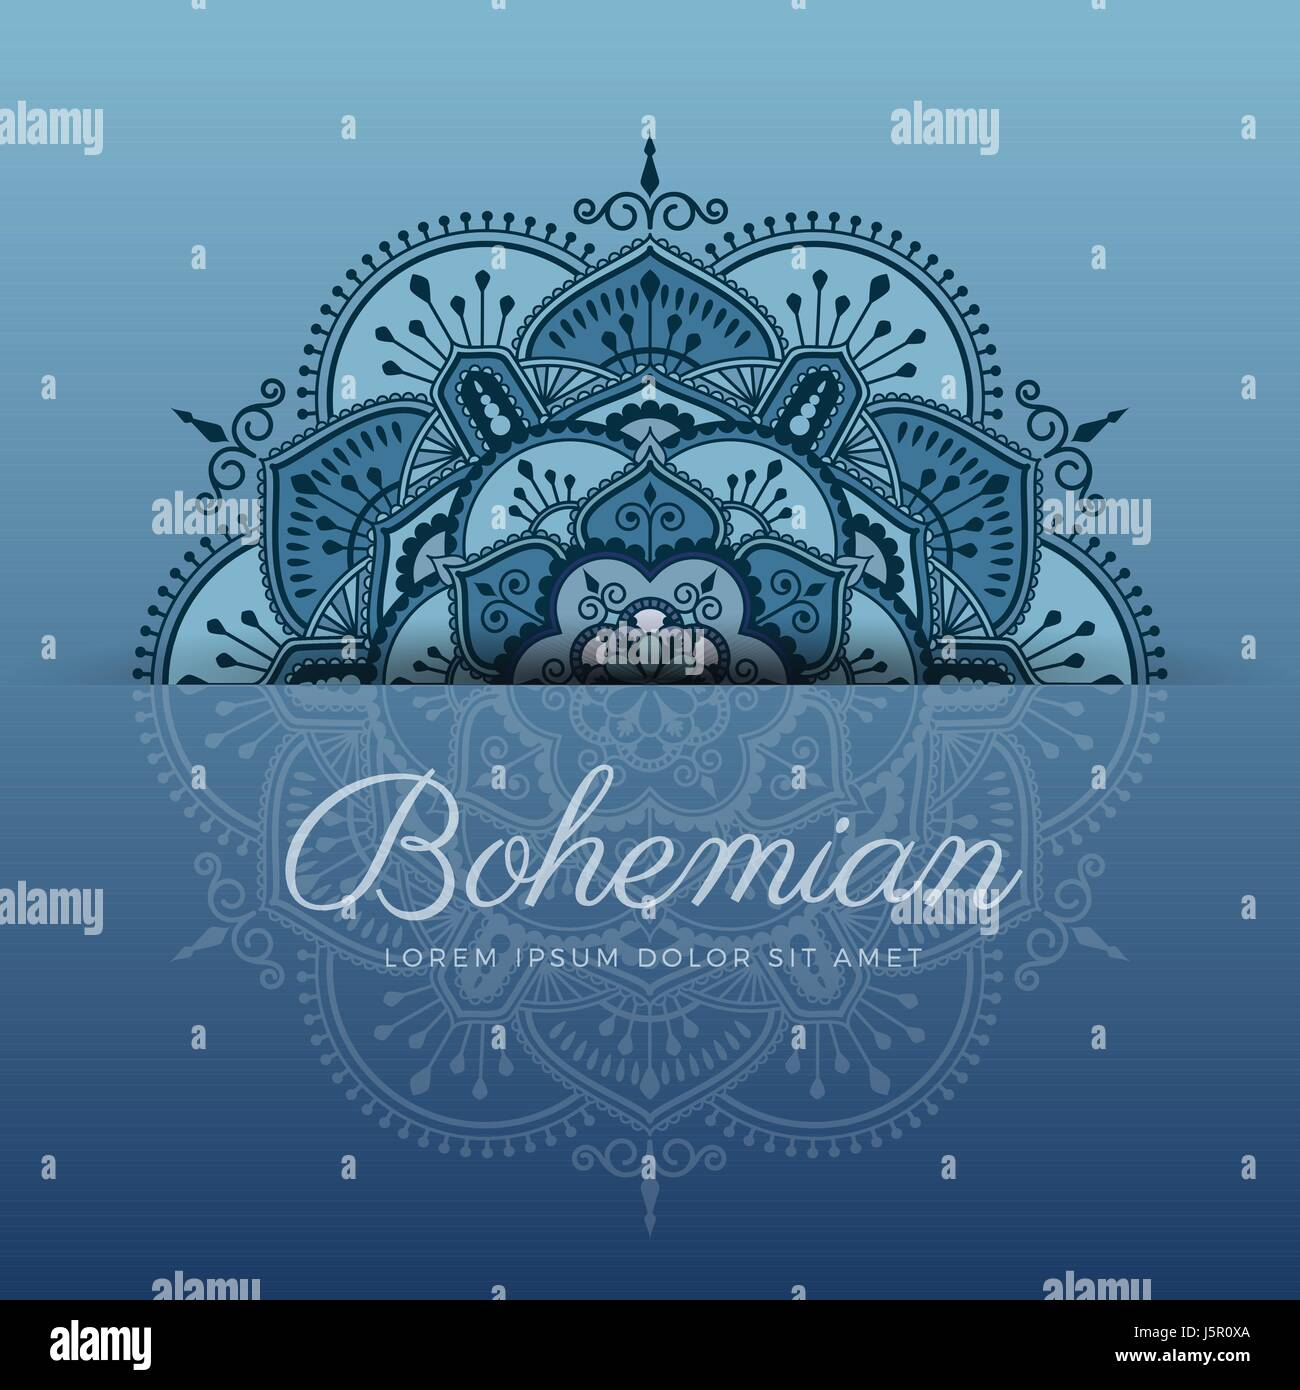 Beautiful Henna Mandala Ornament Design For Background Greeting